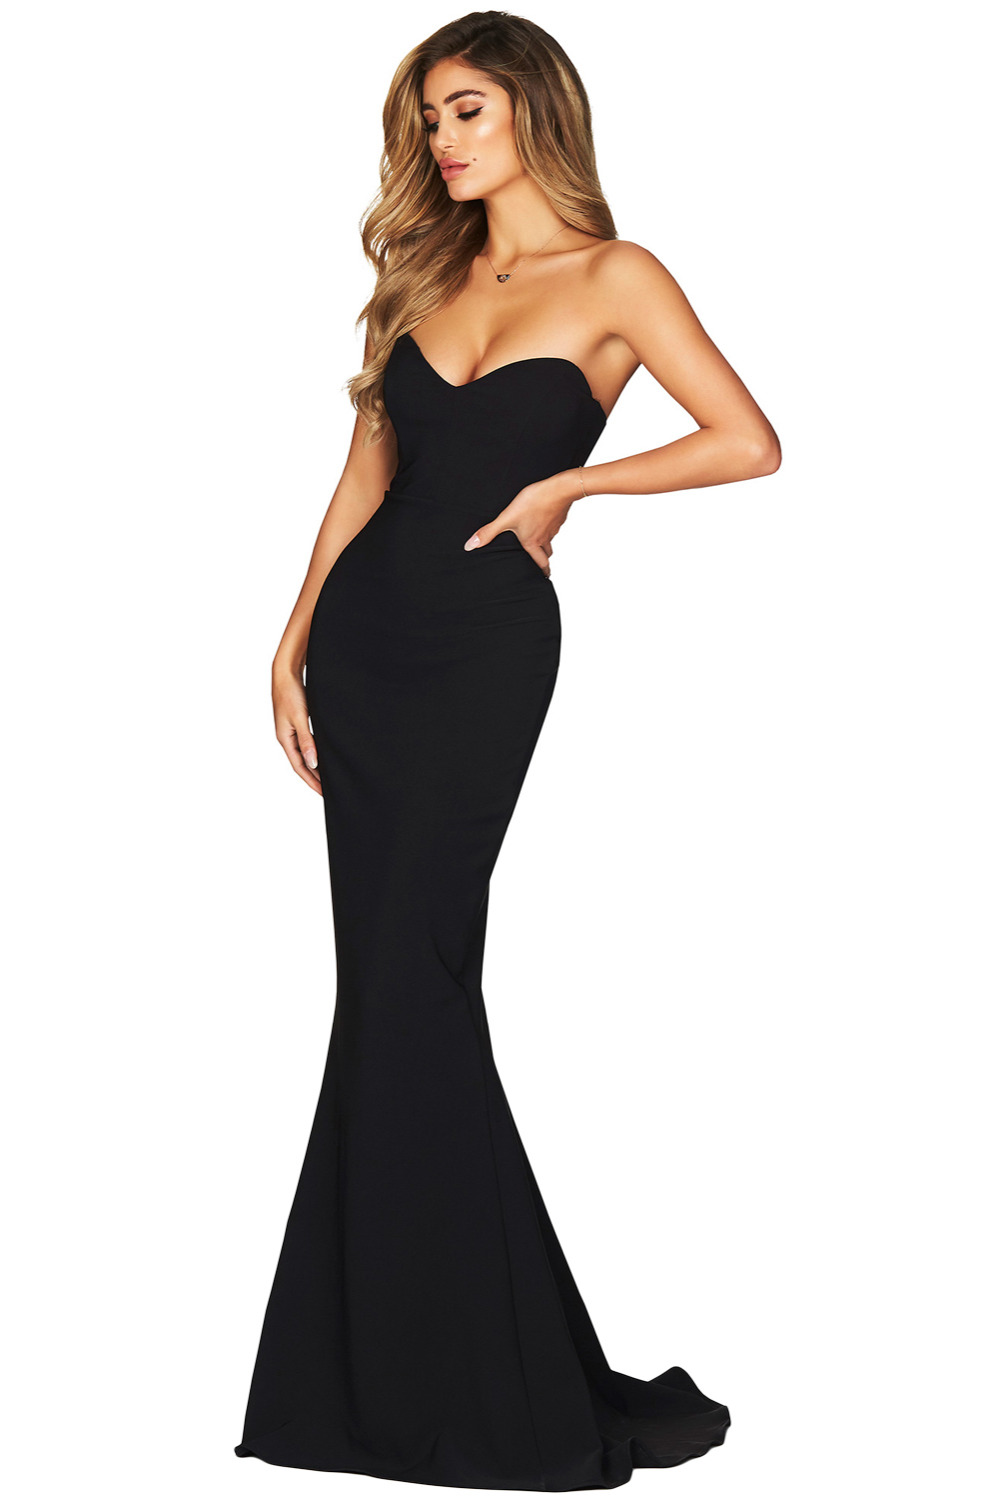 3dbc709a0cdb 2018 New Arrival Summer Women's Fashion Black Strapless Sweetheart Neckline  Mermaid Gown LGY610868-in Dresses from Women's Clothing on Aliexpress.com  ...